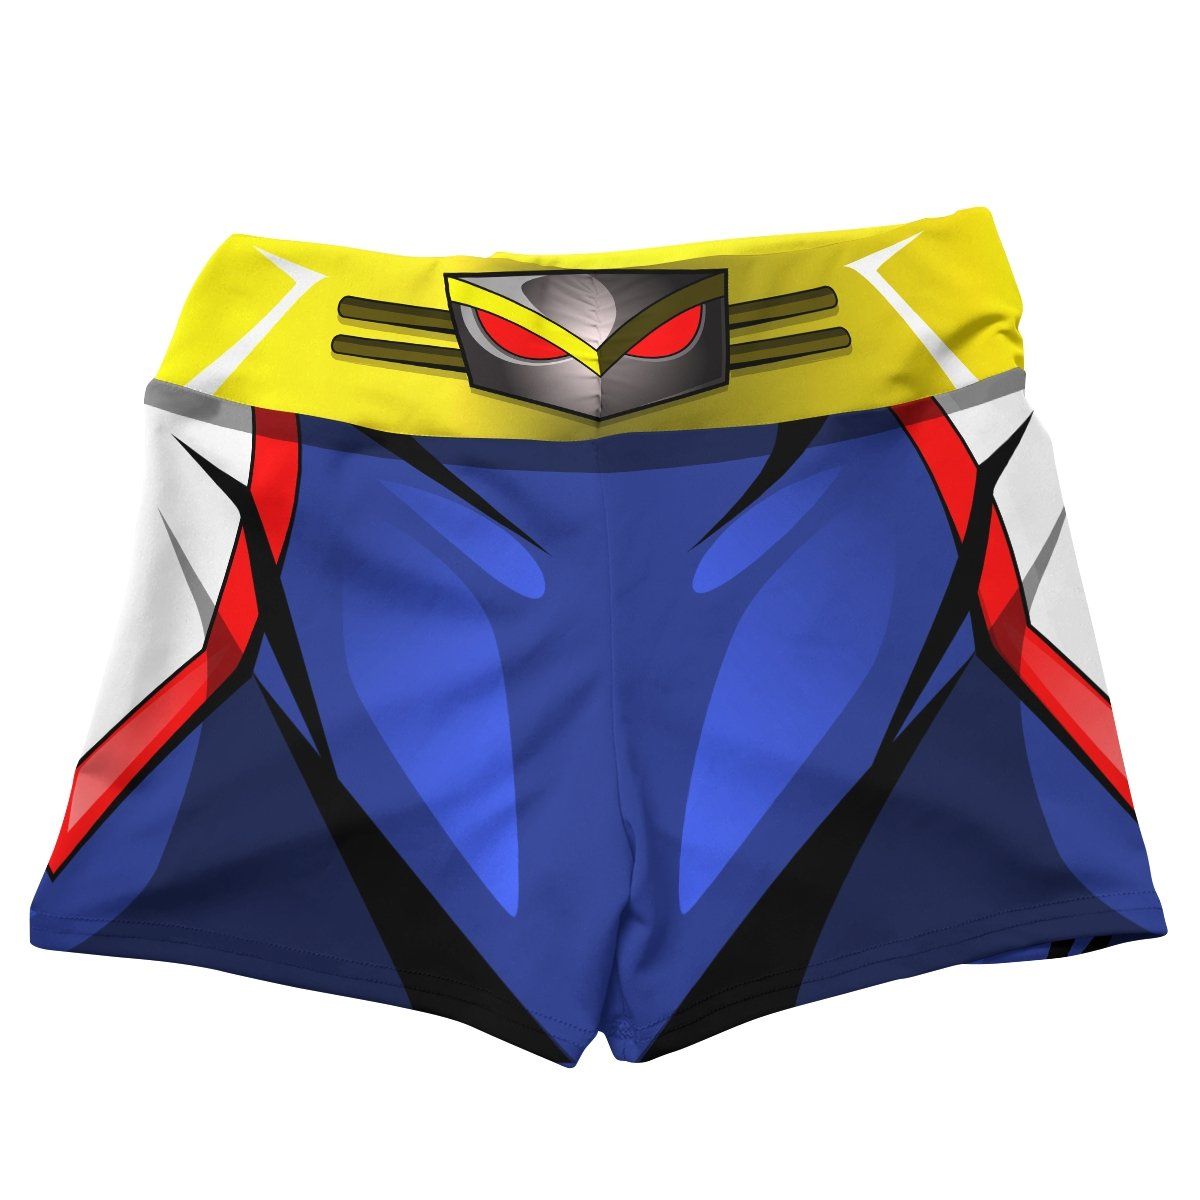 ua high all might active wear set 691780 - Anime Swimsuits